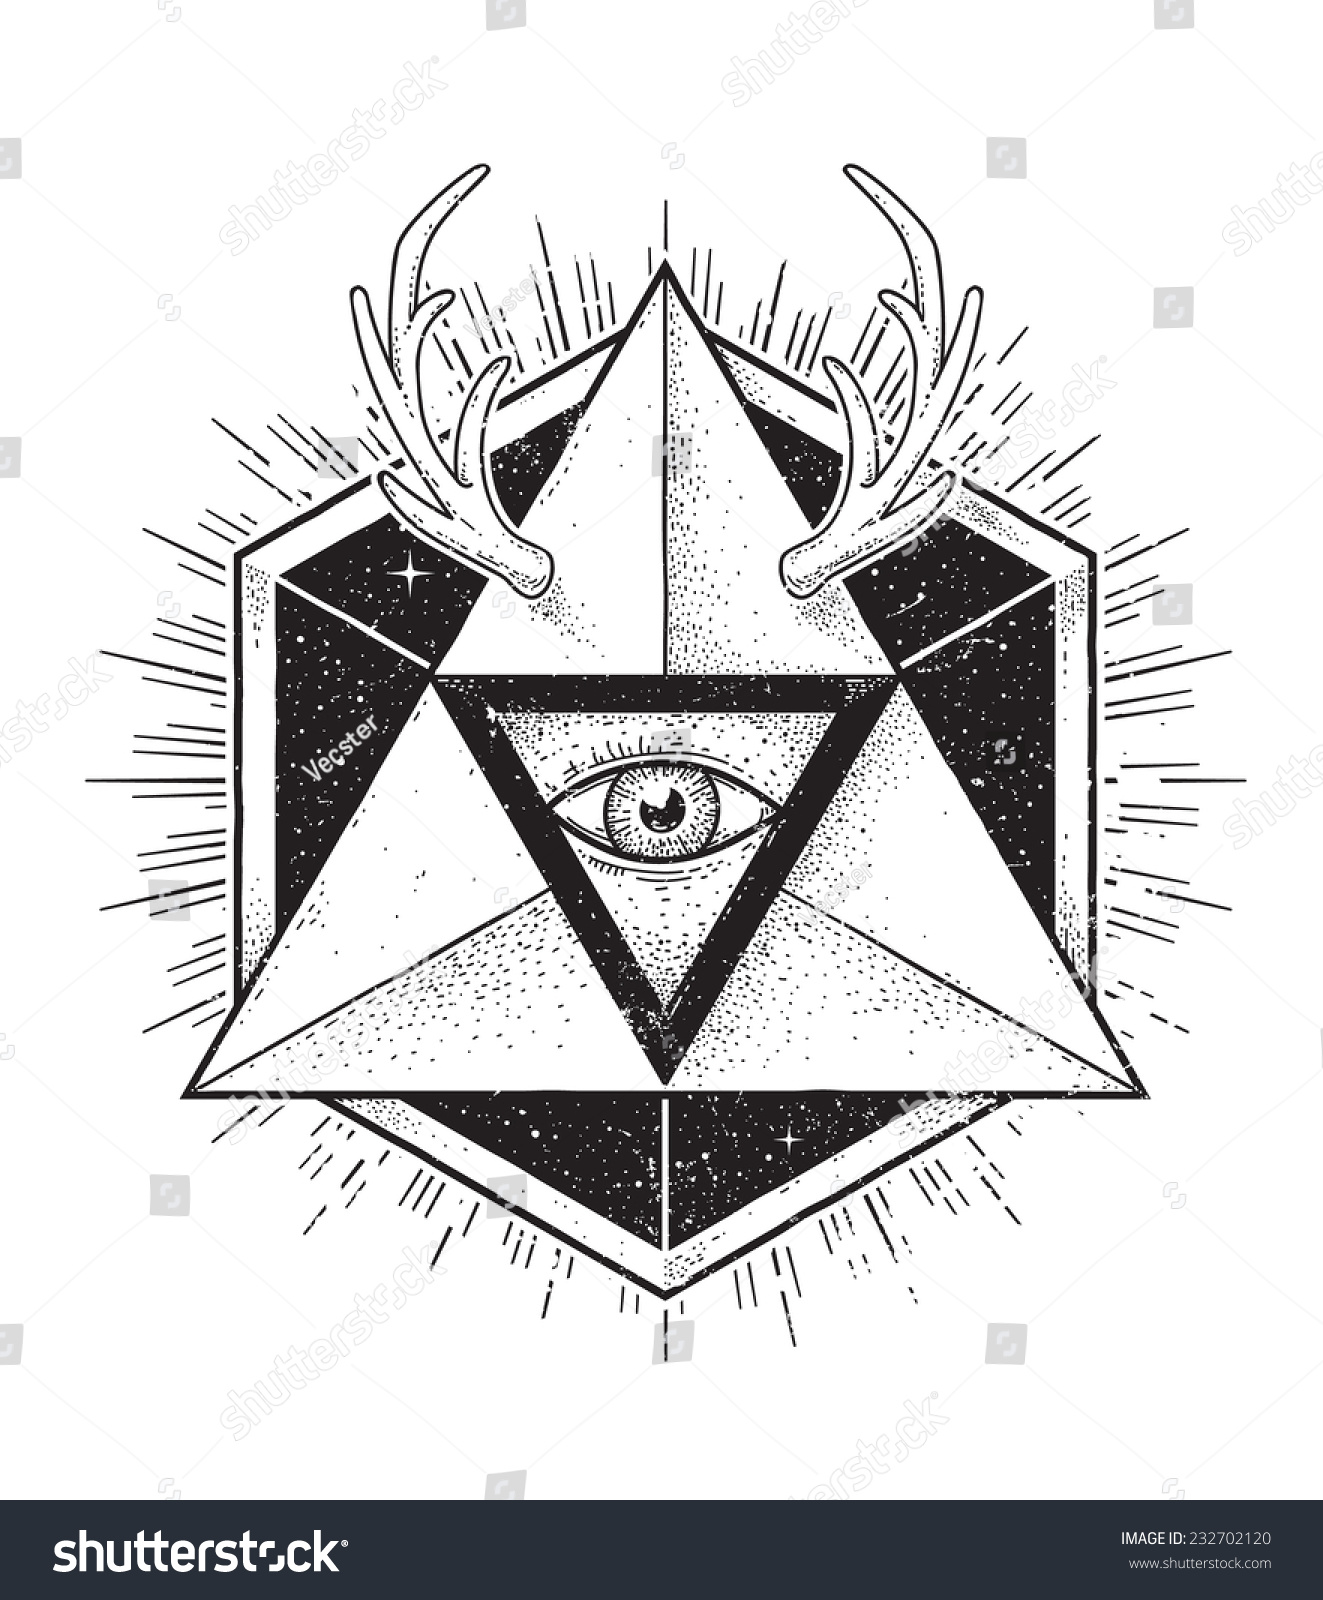 Geometric Abstract Hipster Art. Dot Work Styled Vector ...